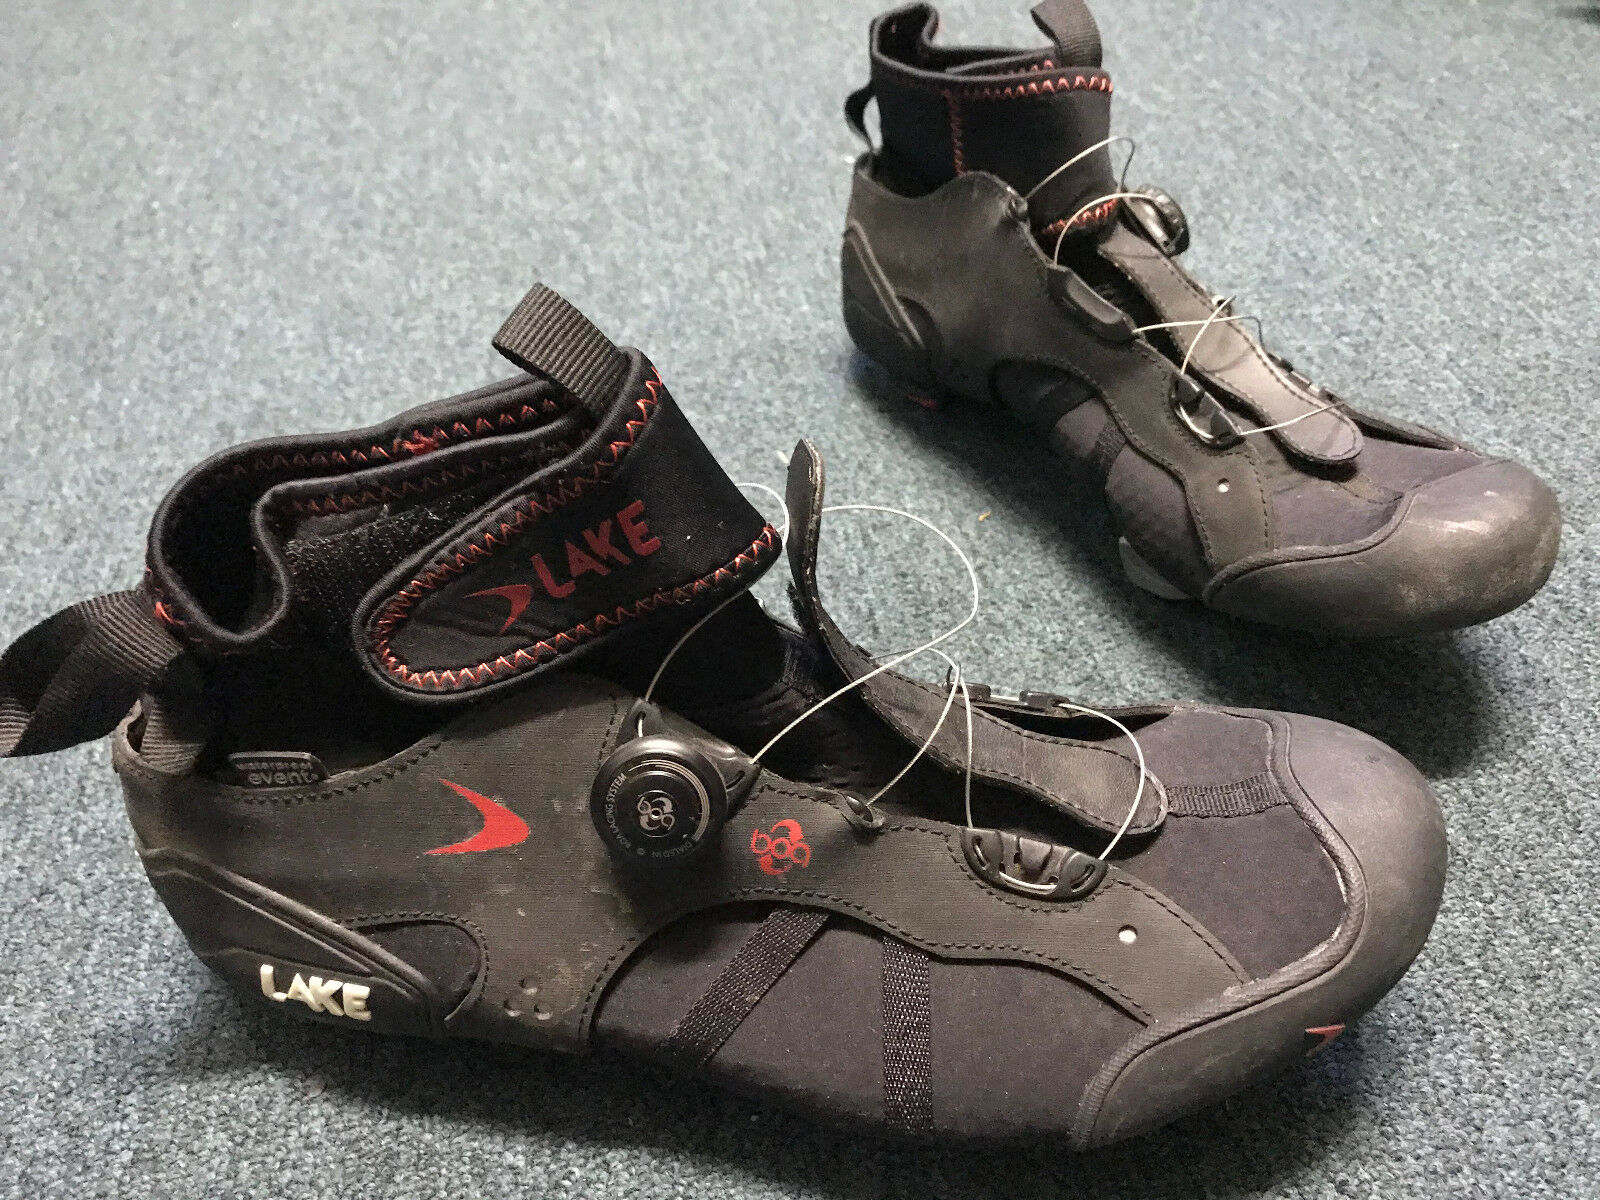 LAKE EVENT WATERPROOF CYCLING   ROAD BIKE CLEATS   SHOES MENS sz 13